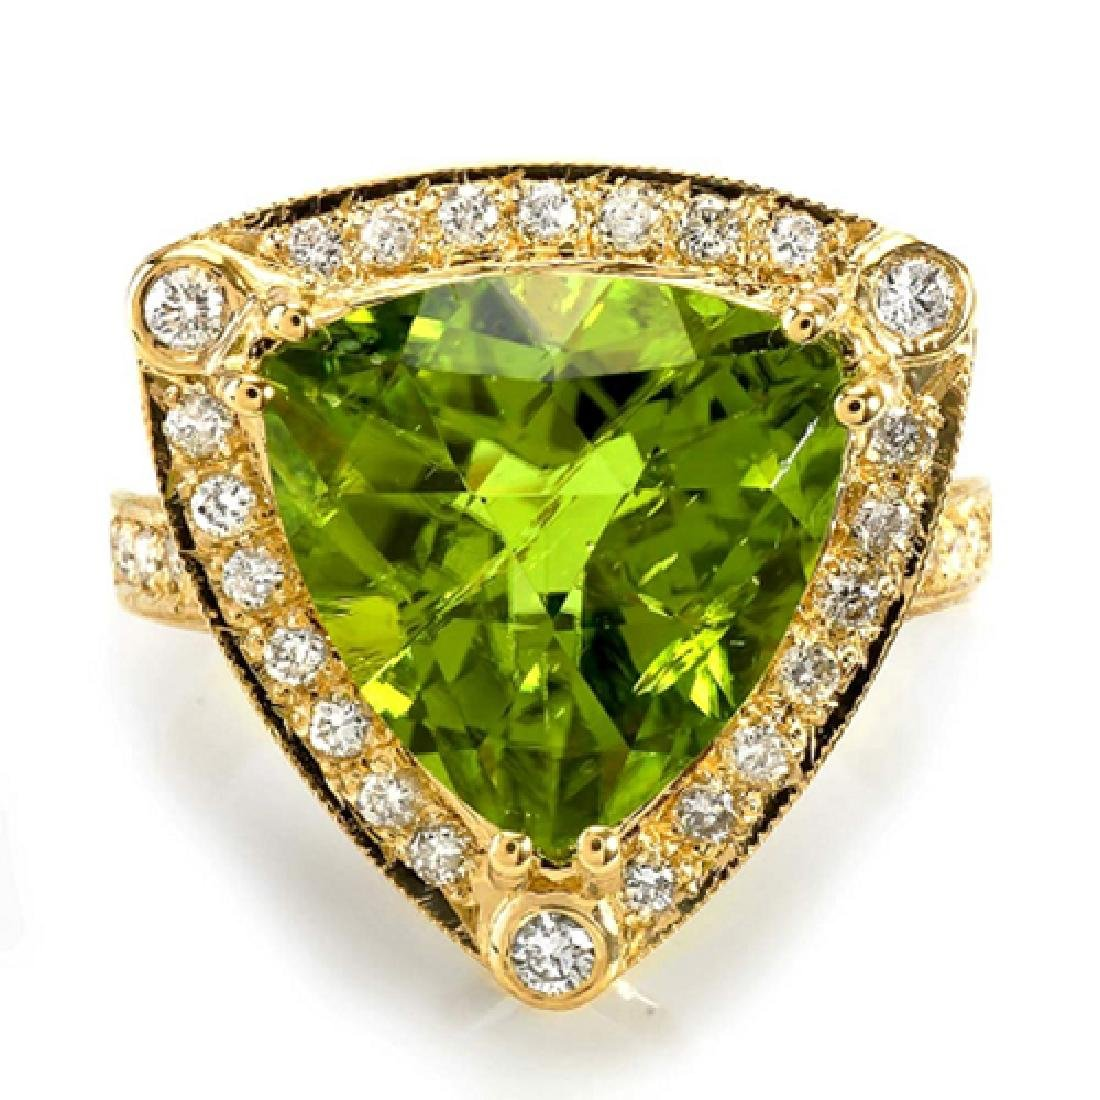 7.90 Carat Natural Peridot 18K Solid Yellow Gold